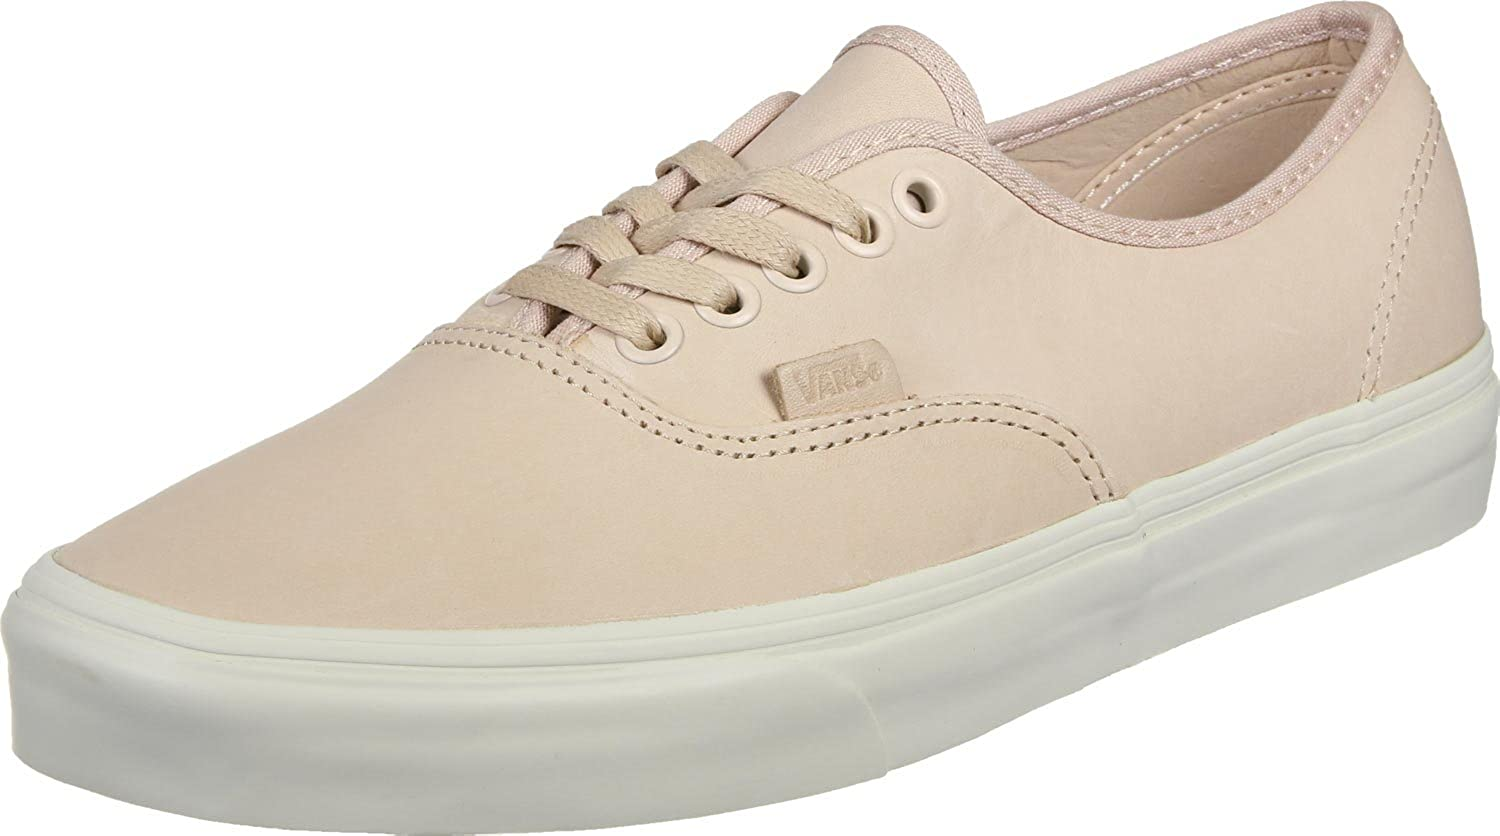 [バンズ] スニーカー Women's AUTHENTIC (Pig Suede) VN0A38EMU5O レディース B01MSLG7M7 Veggie Tan Leather 5.5 D(M) US 5.5 D(M) US|Veggie Tan Leather